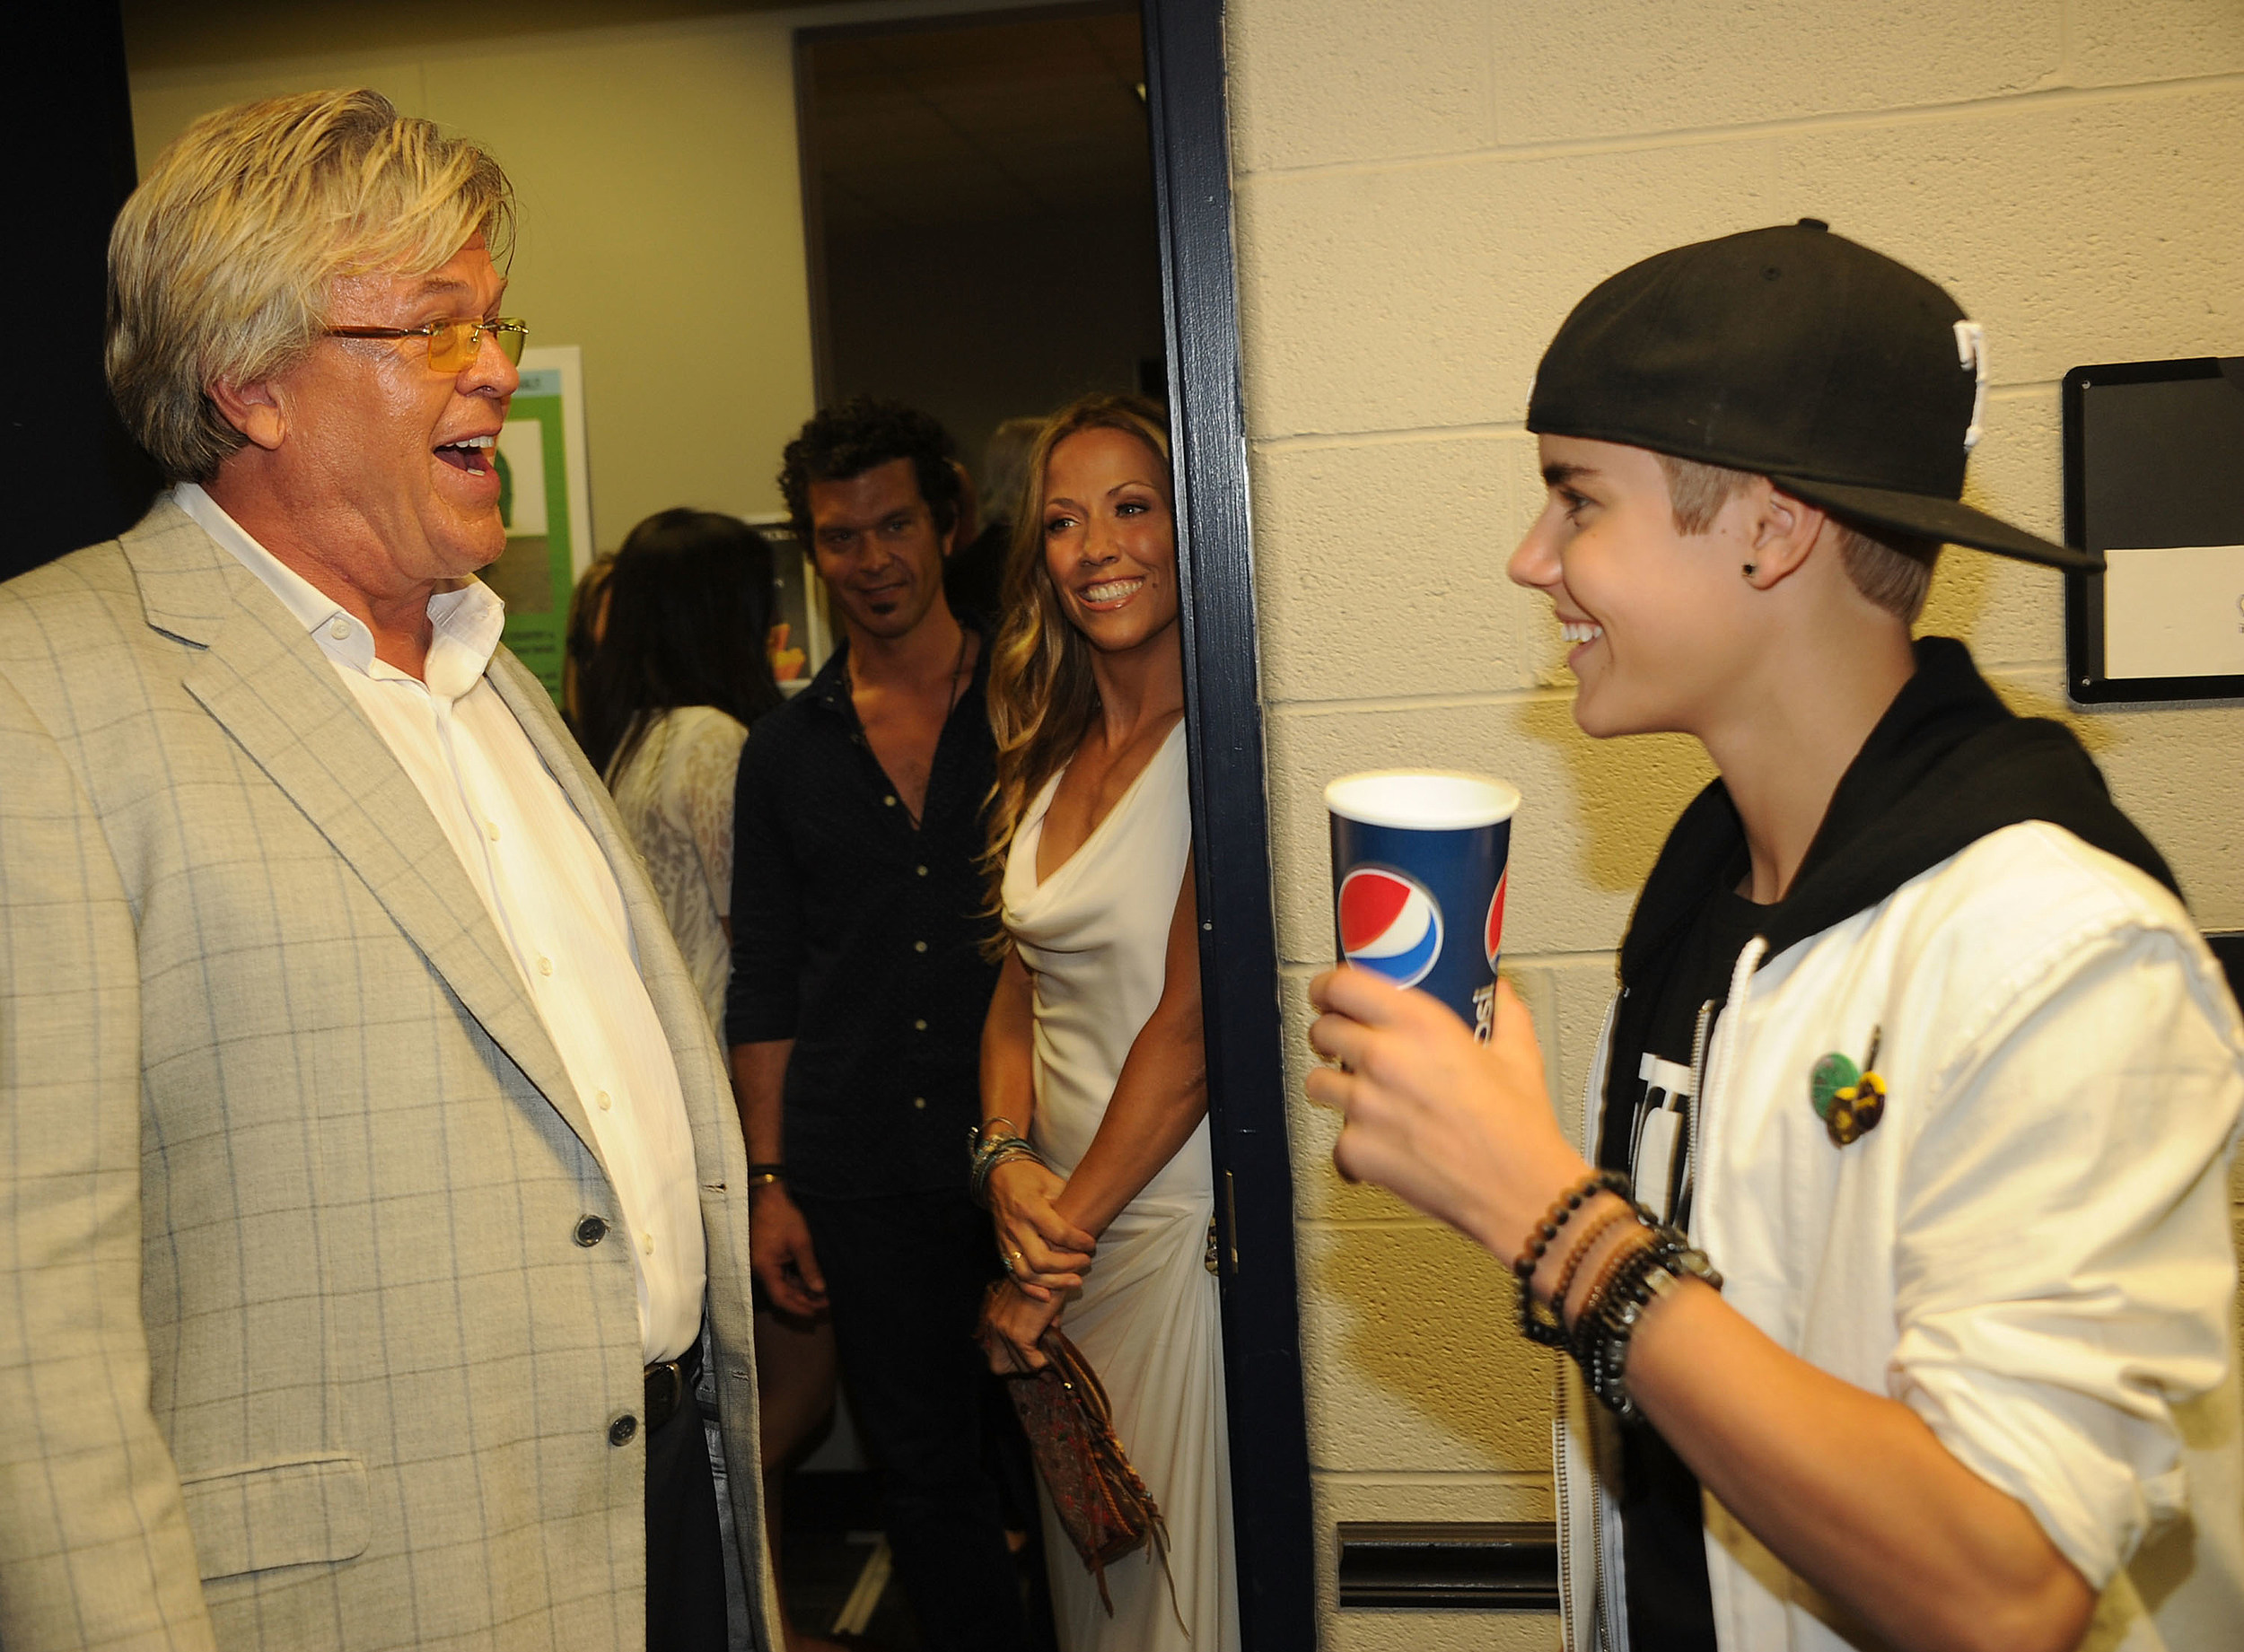 Ron White and Justin Bieber